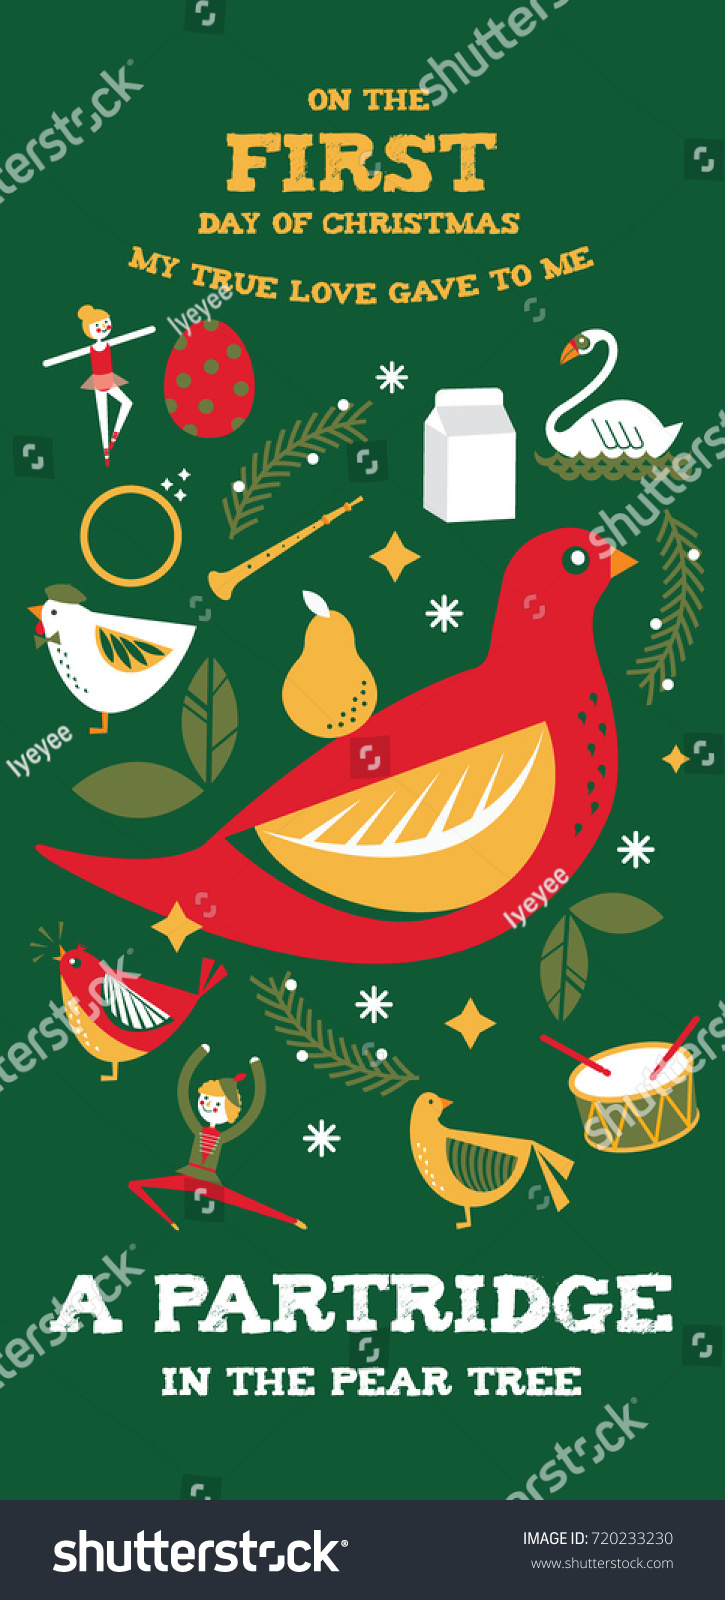 medium resolution of first day of christmas from the twelve days of christmas greetings template vector illustration